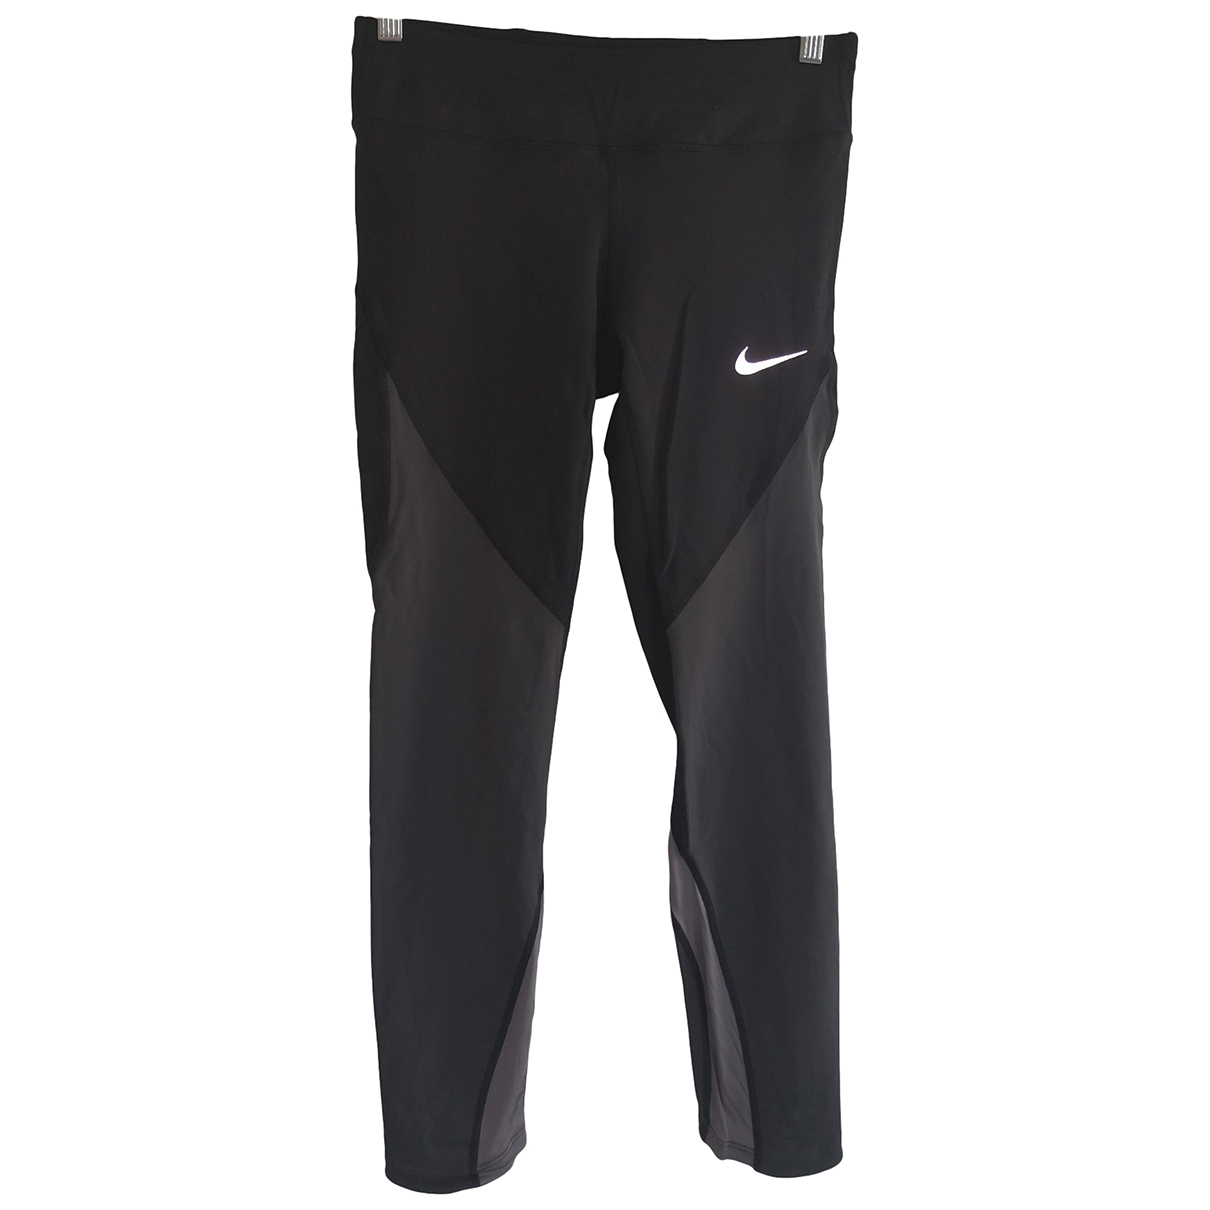 Nike \N Trousers for Women M